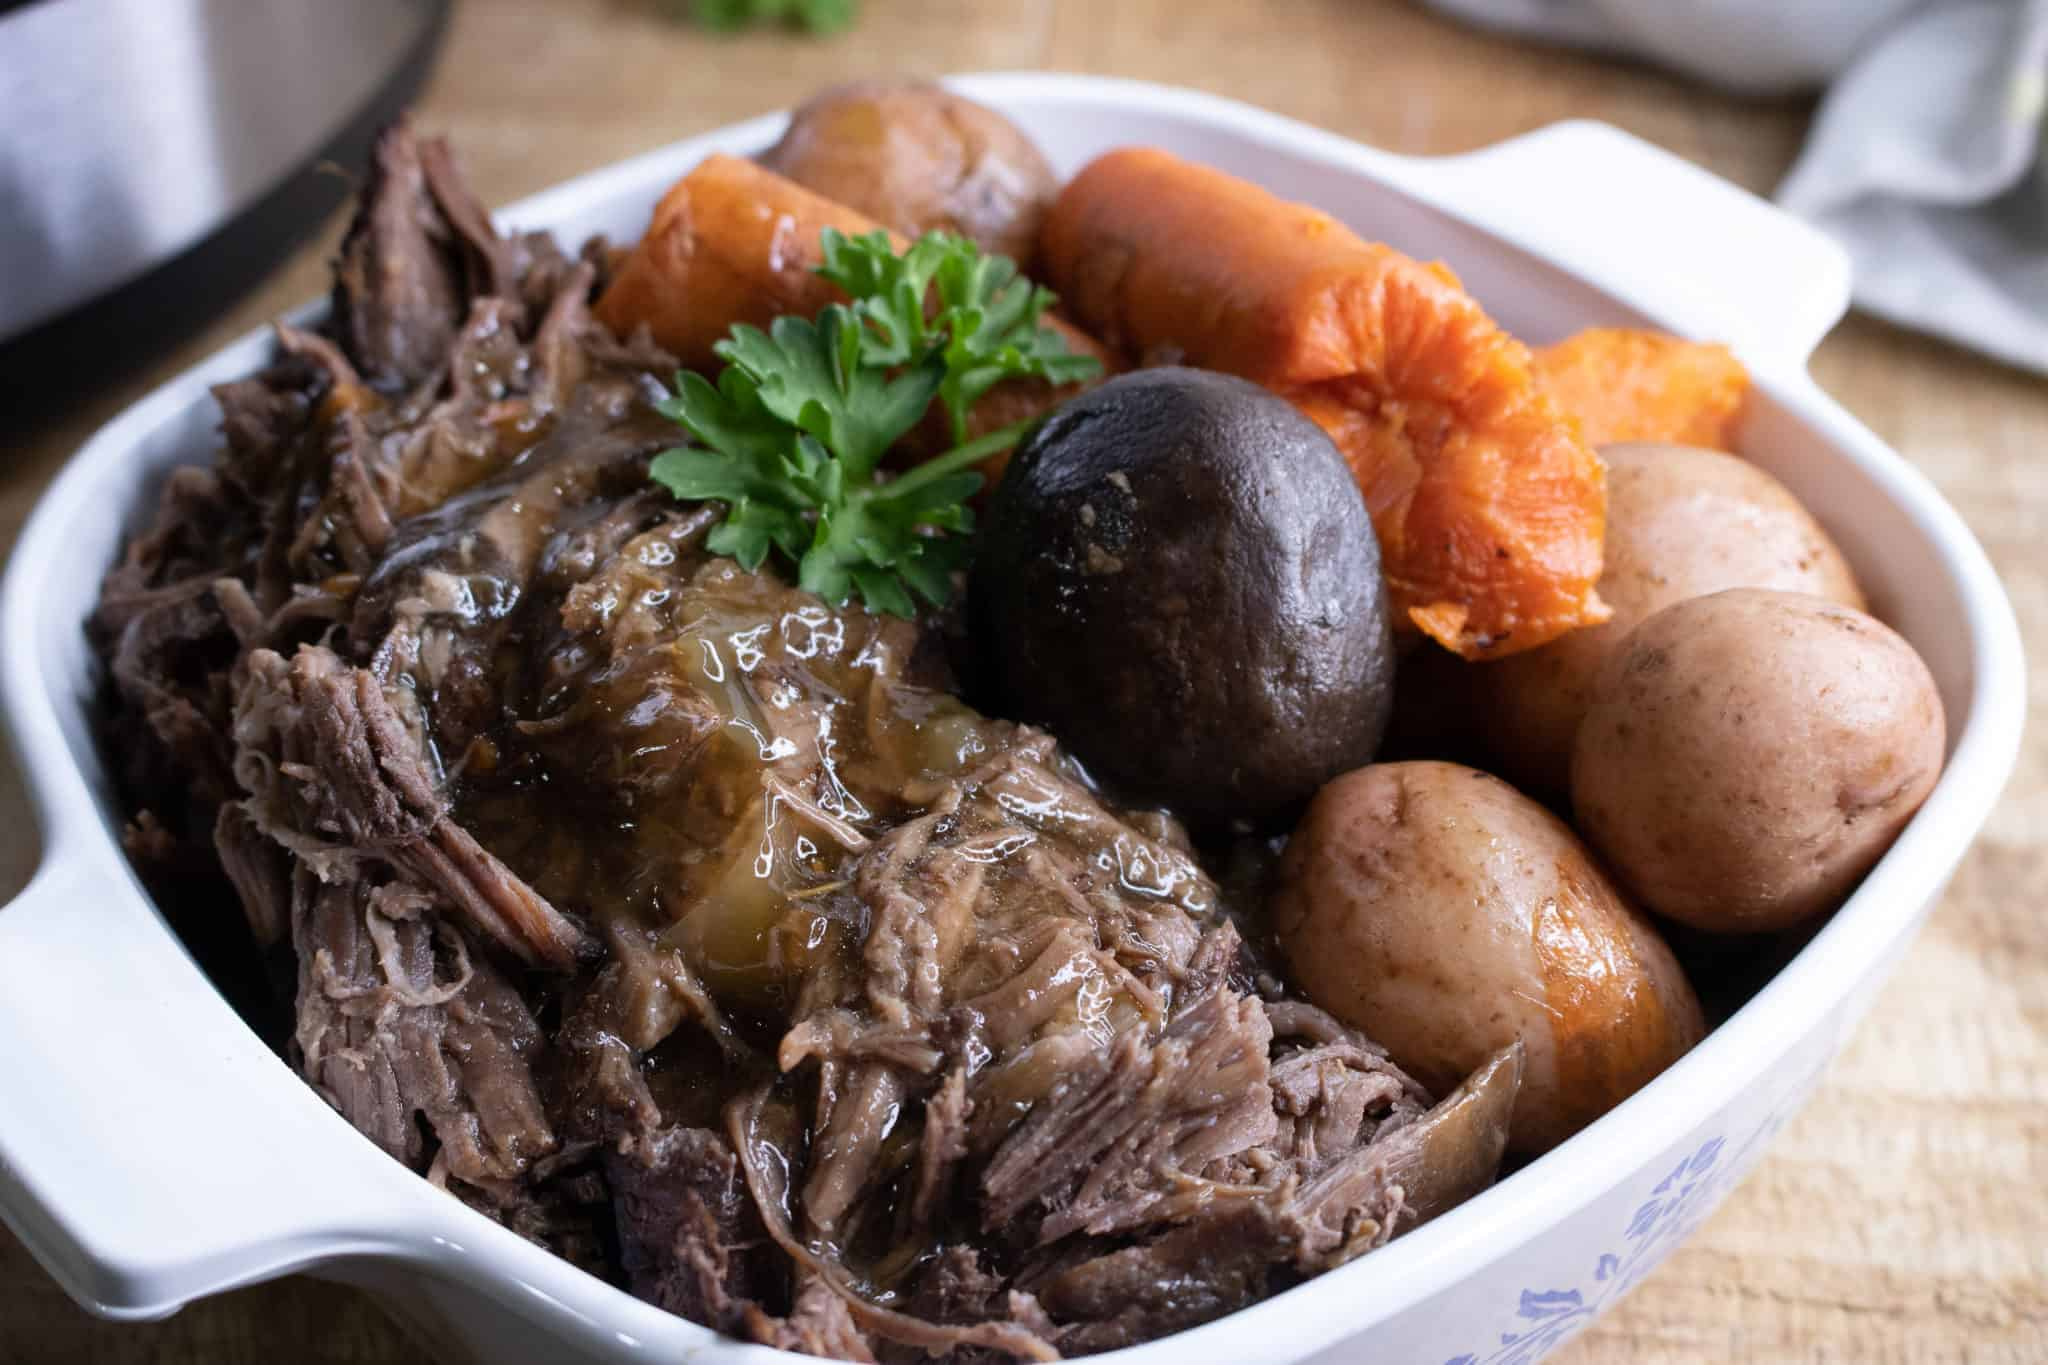 It's done -- a delicious array of flavorful food for your easy instant pot pot roast.